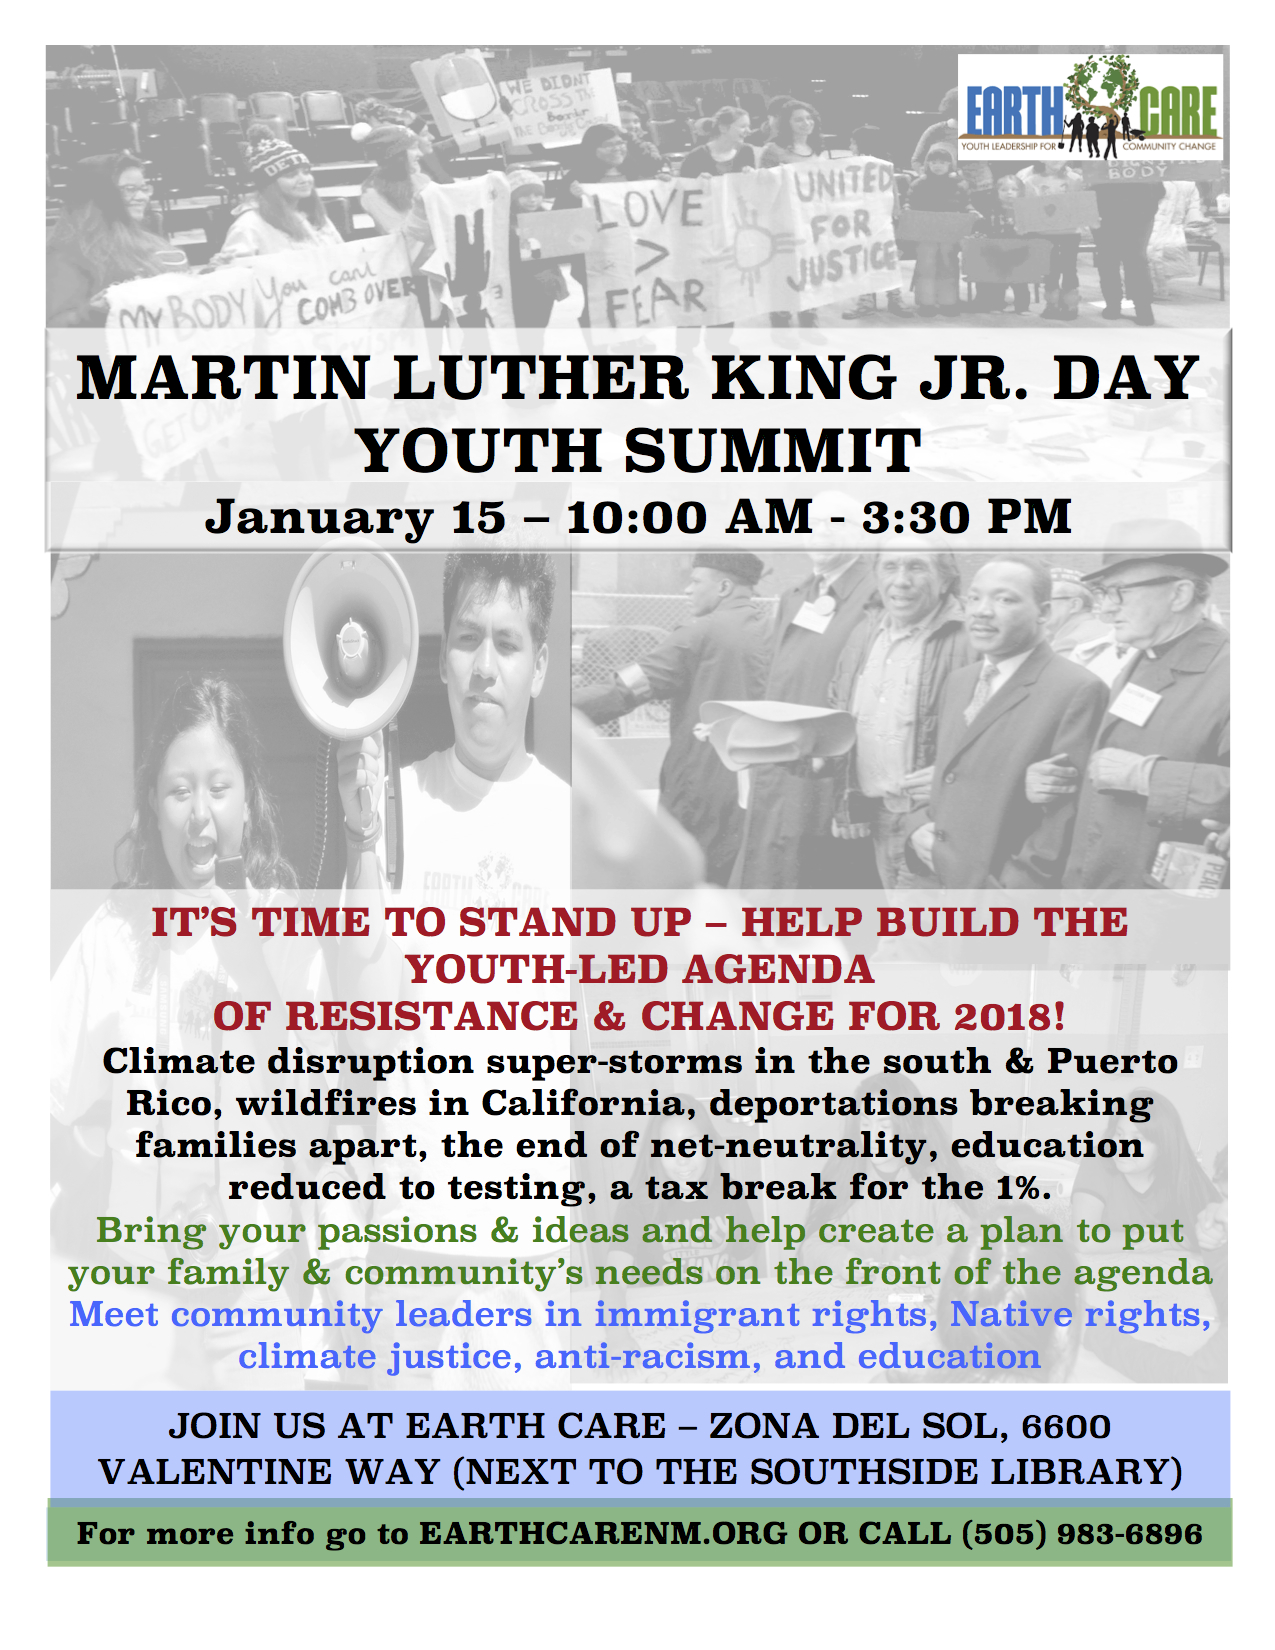 MLK_Day_Flyer_1-15-2018.jpg